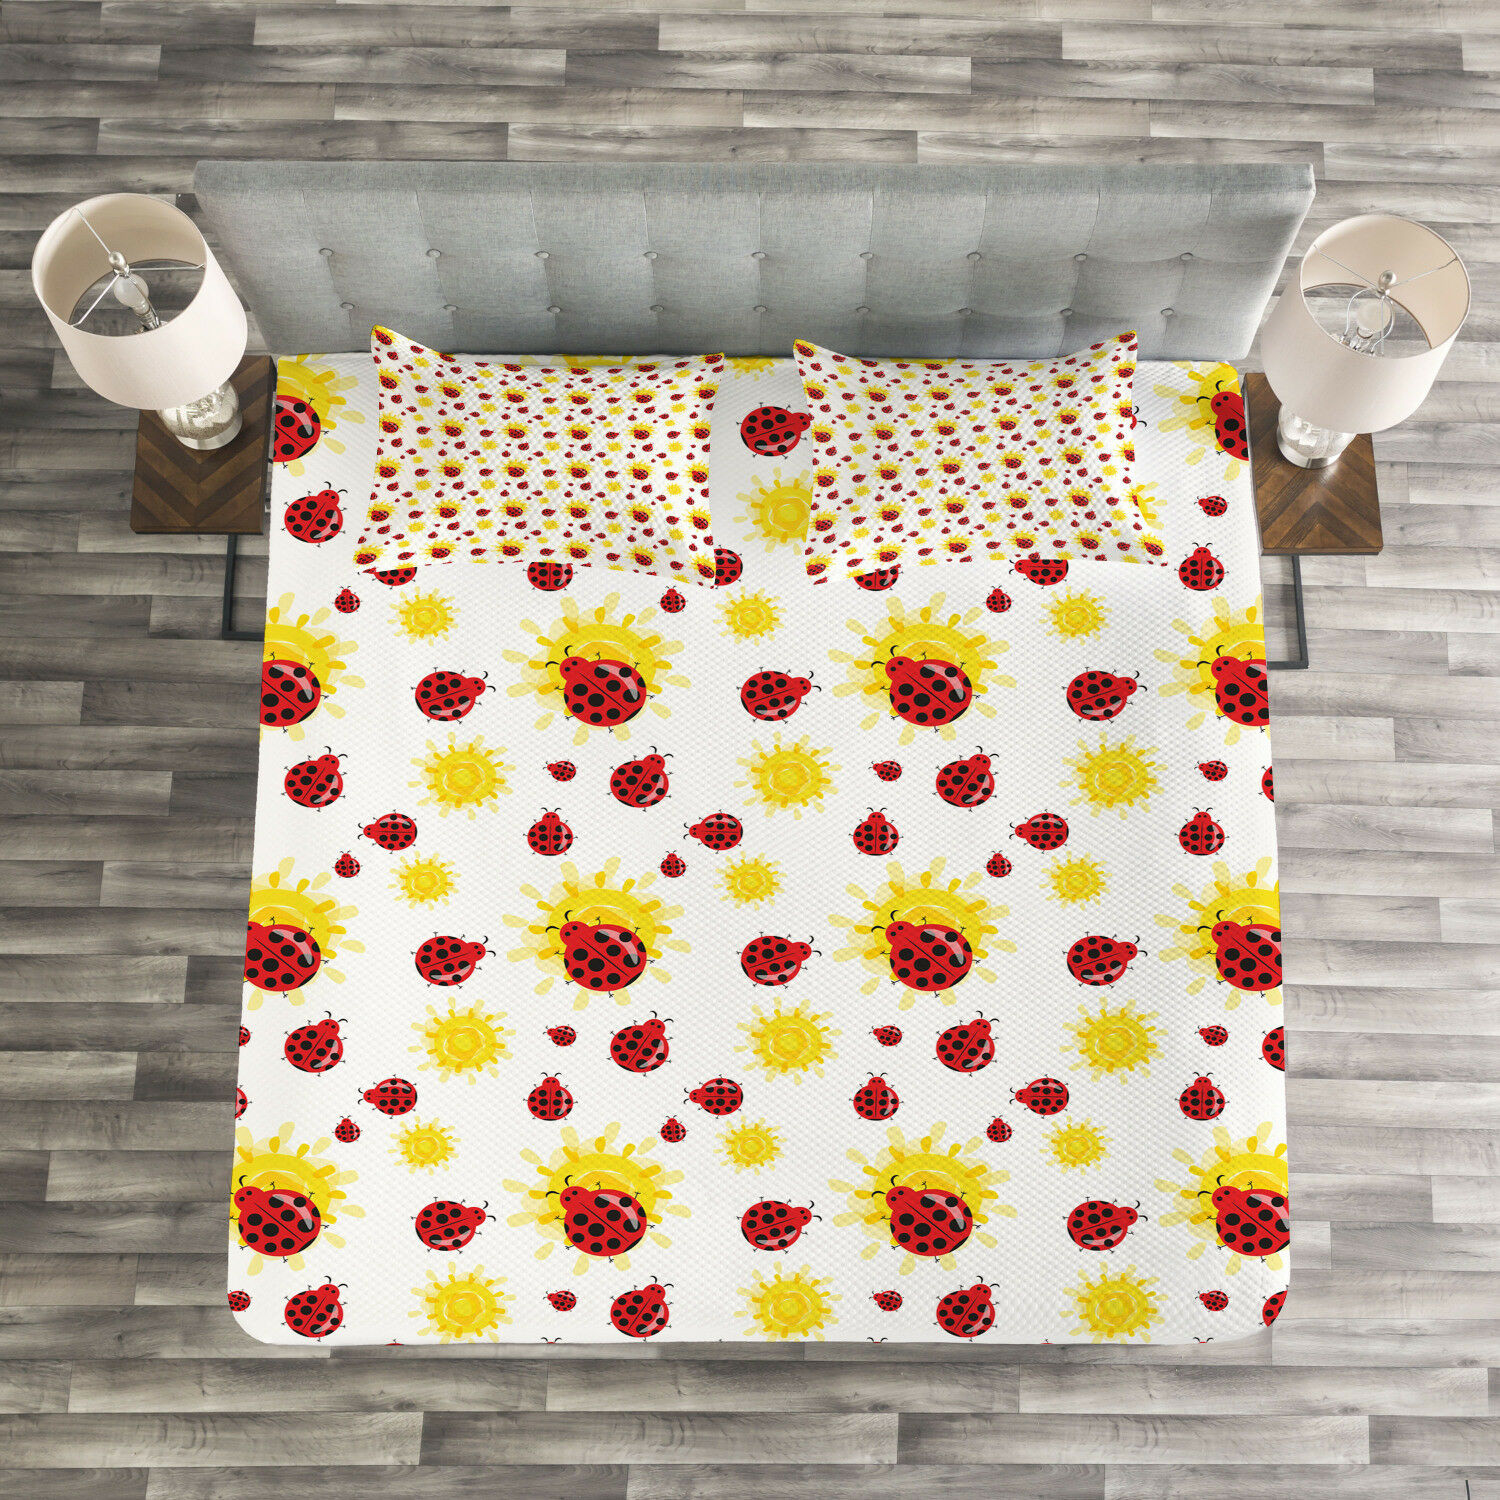 Ladybugs Quilted Bedspread & Pillow Shams Set, Summer Inspired Bugs Print